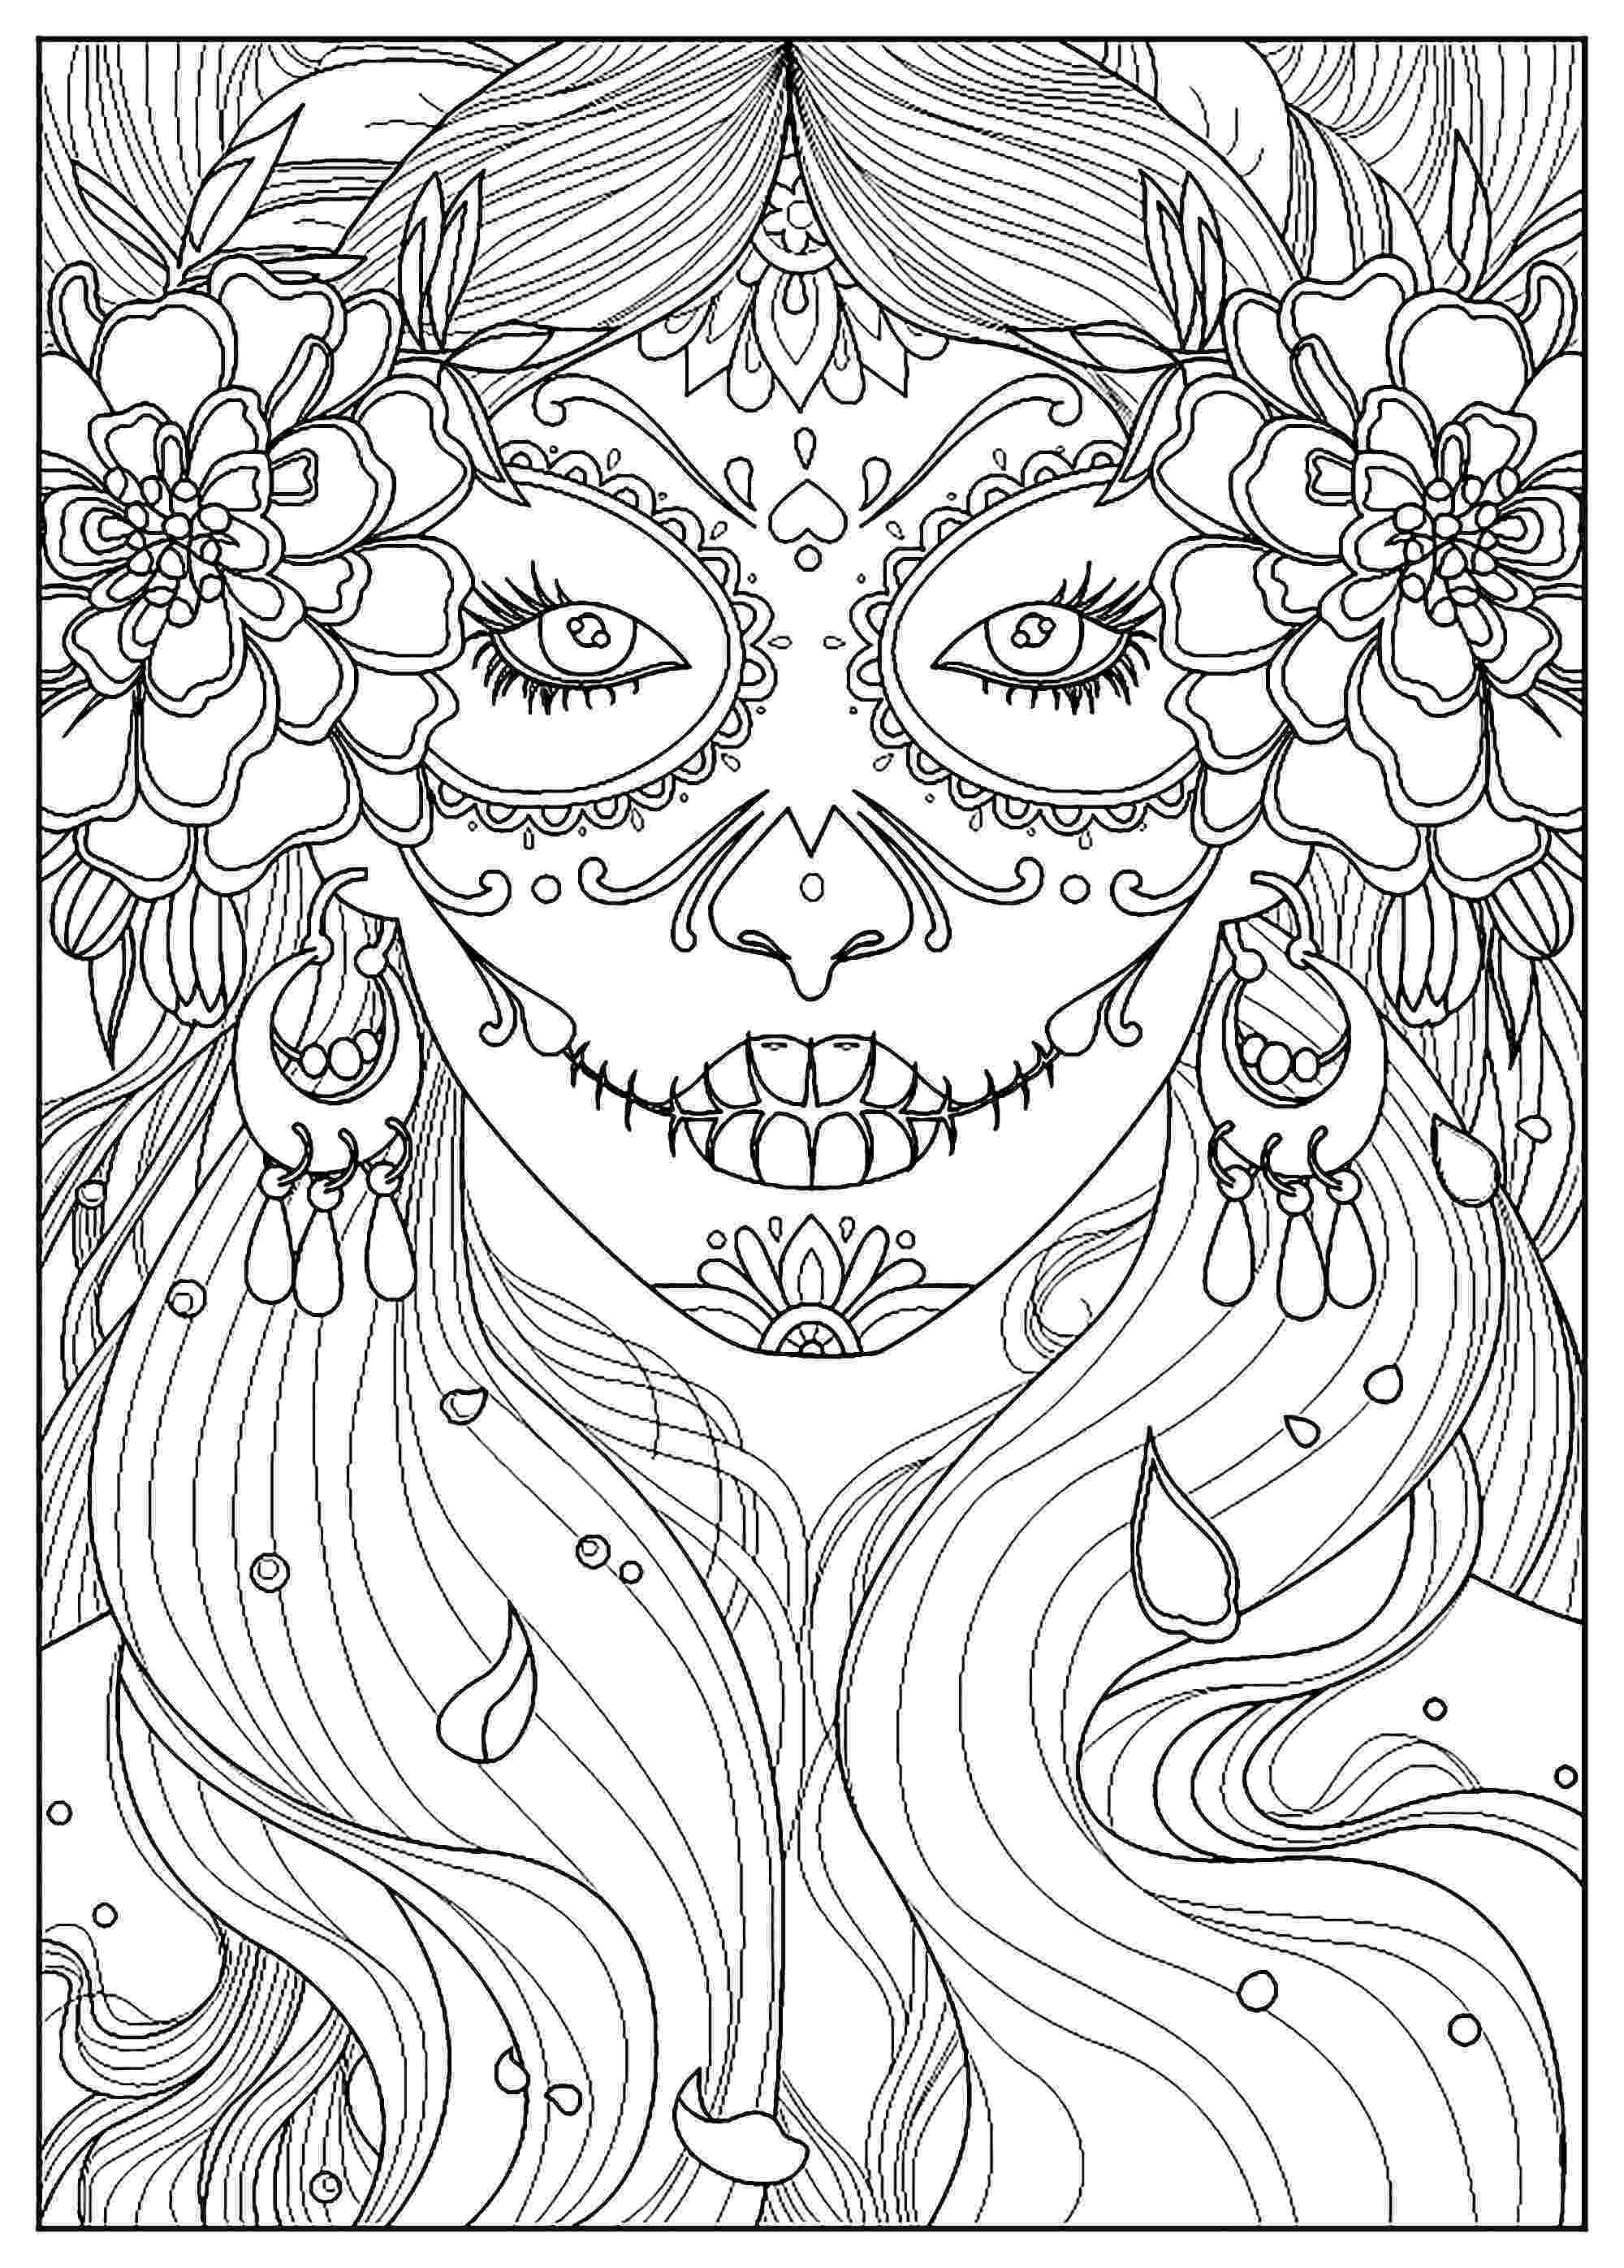 coloring pages for adults day of the dead welcome to dover publications sketchy as fuck day coloring dead for of adults pages the